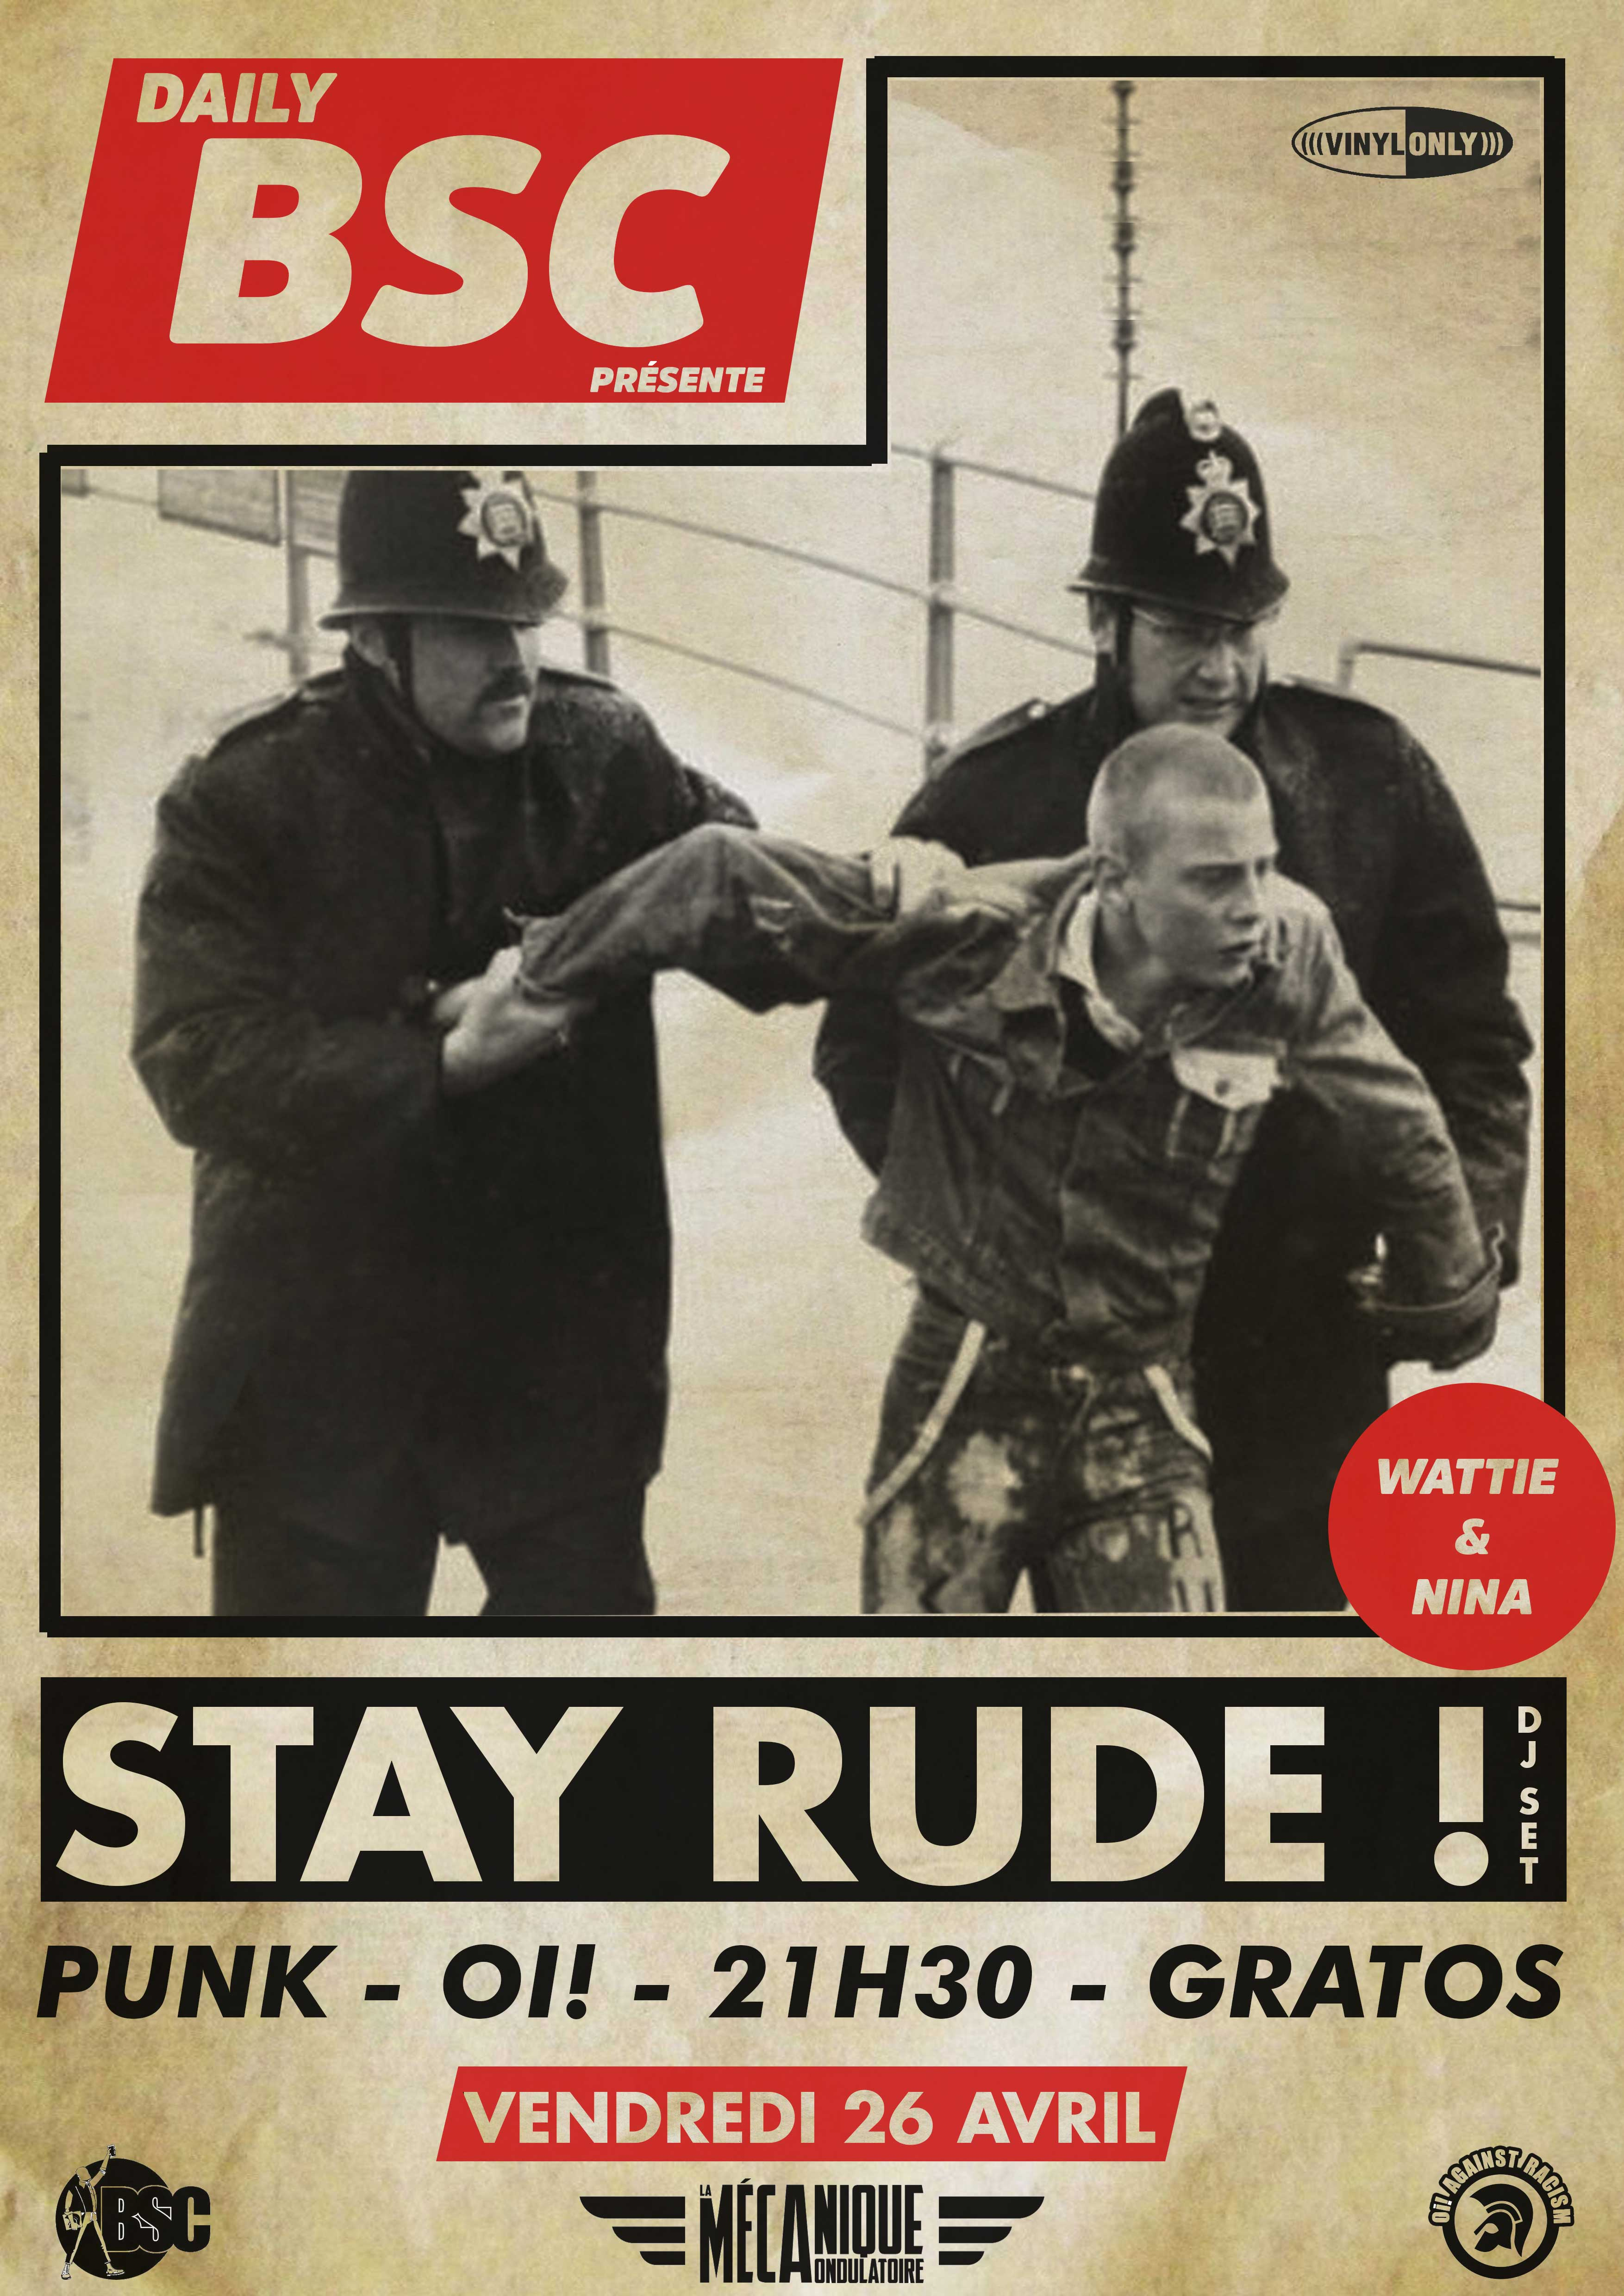 STAY RUDE! // 26.04